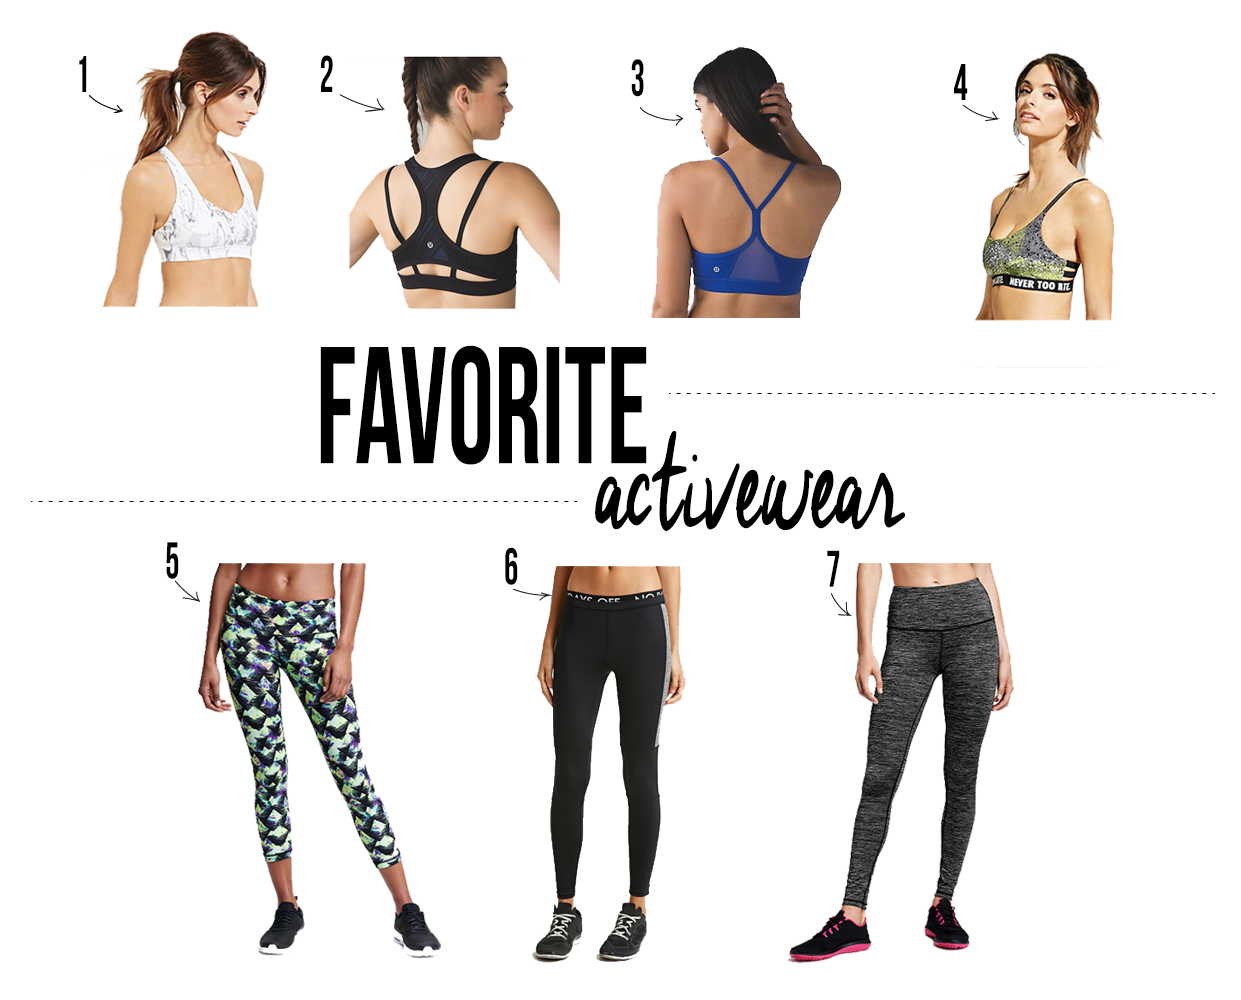 favorite activewear options